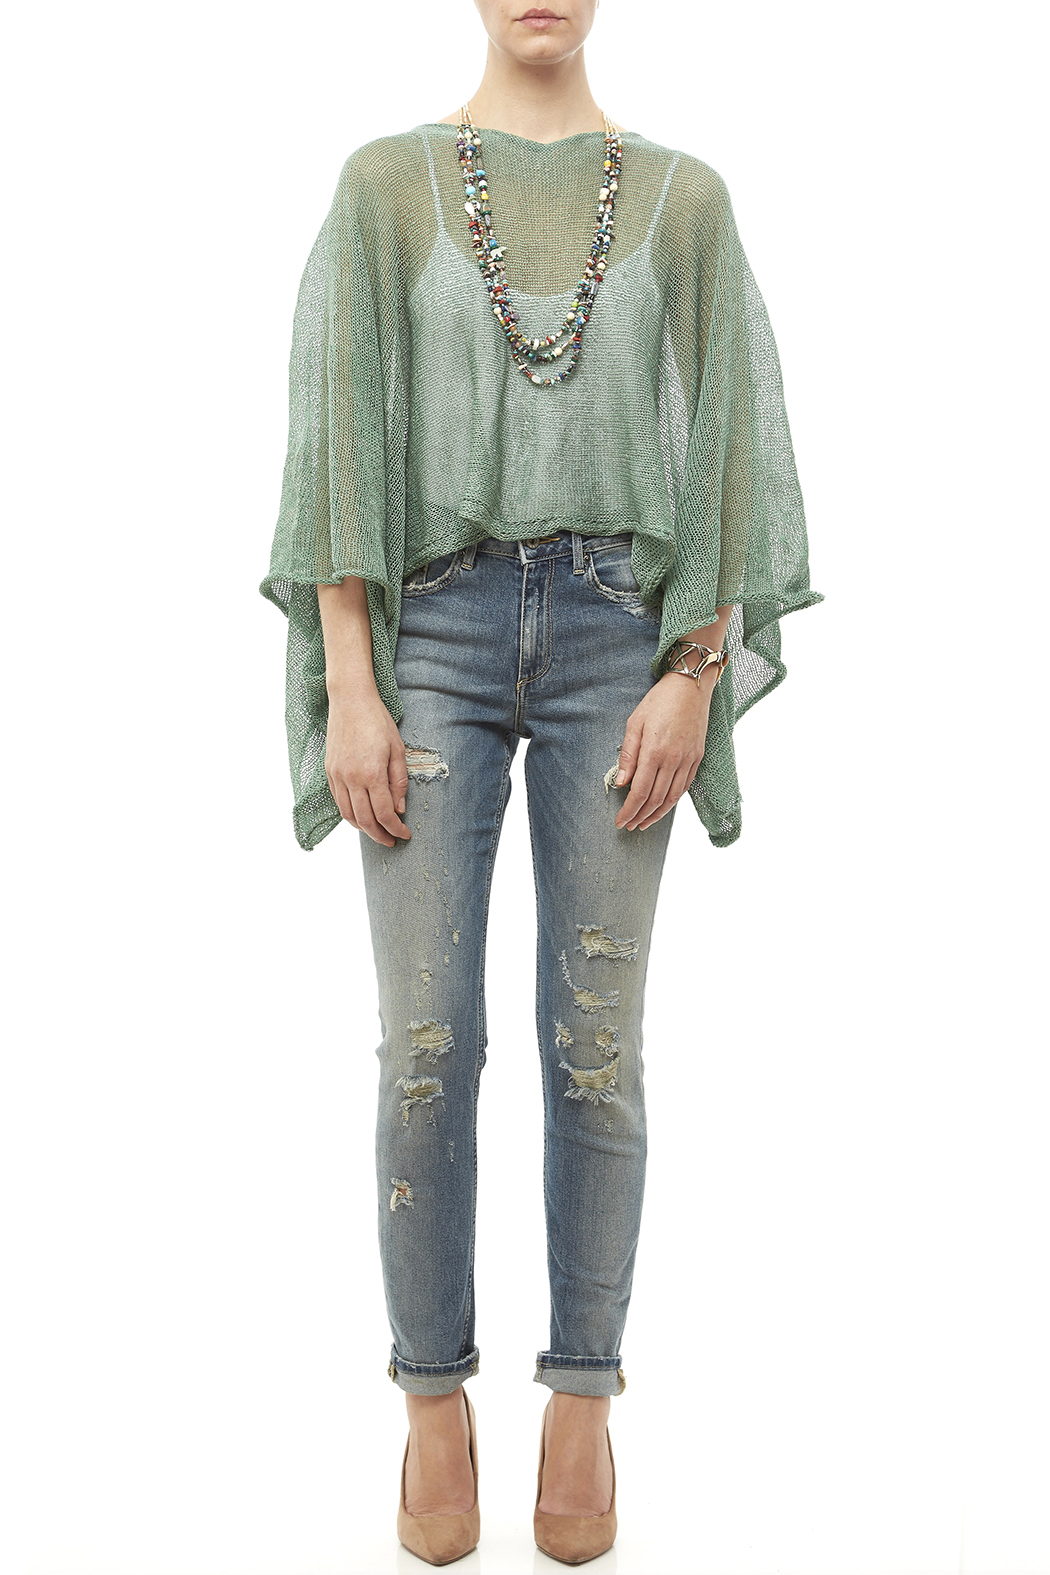 DC KNITS Green Linen Blend Sweater - Front Full Image